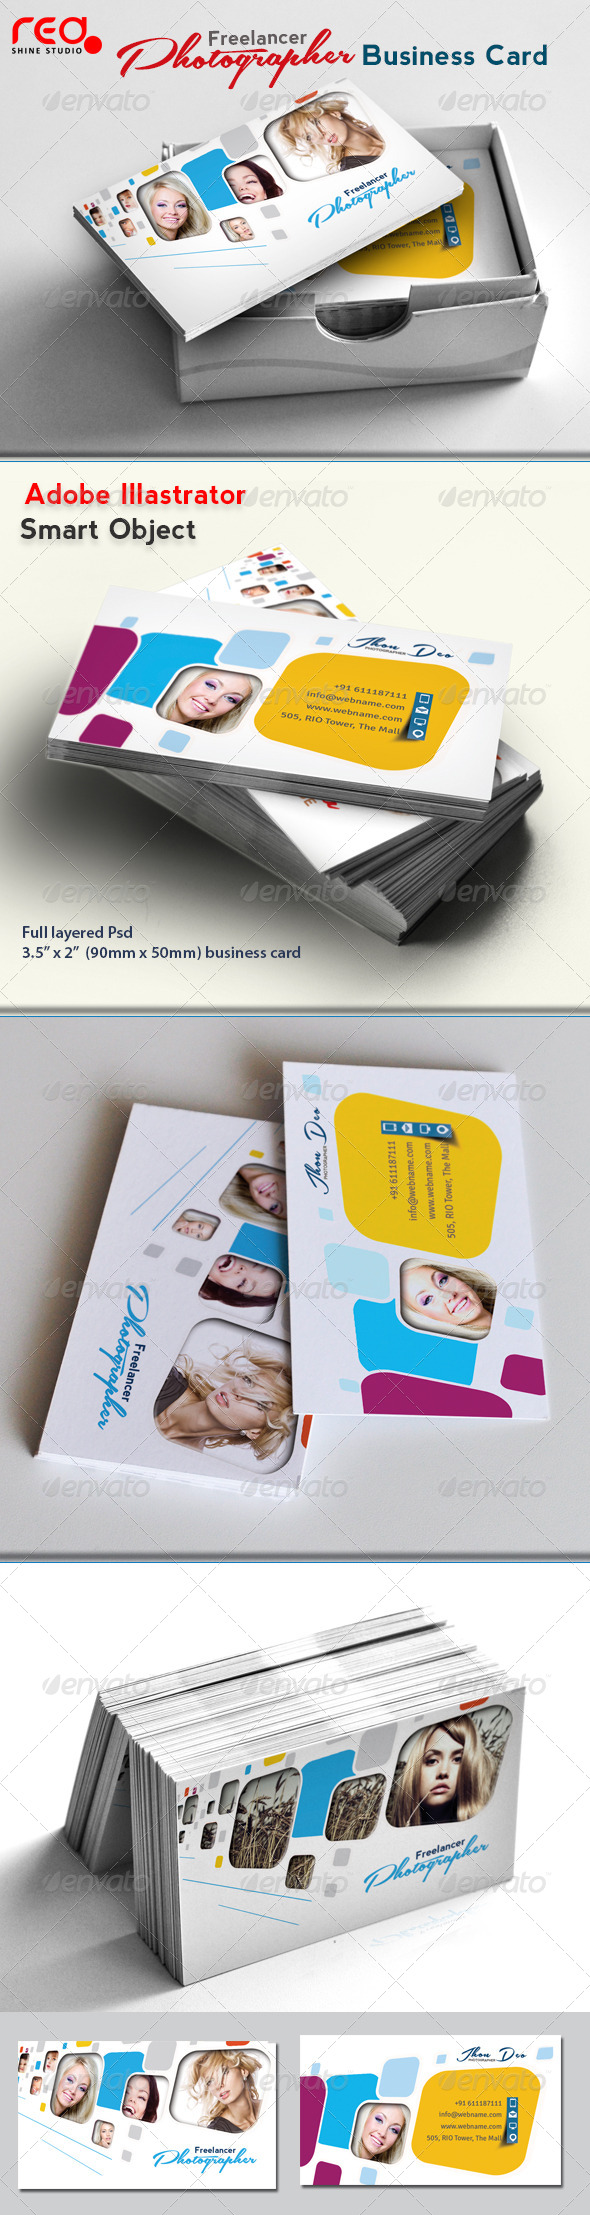 Freelance Photographer Business Card - 02 - Creative Business Cards